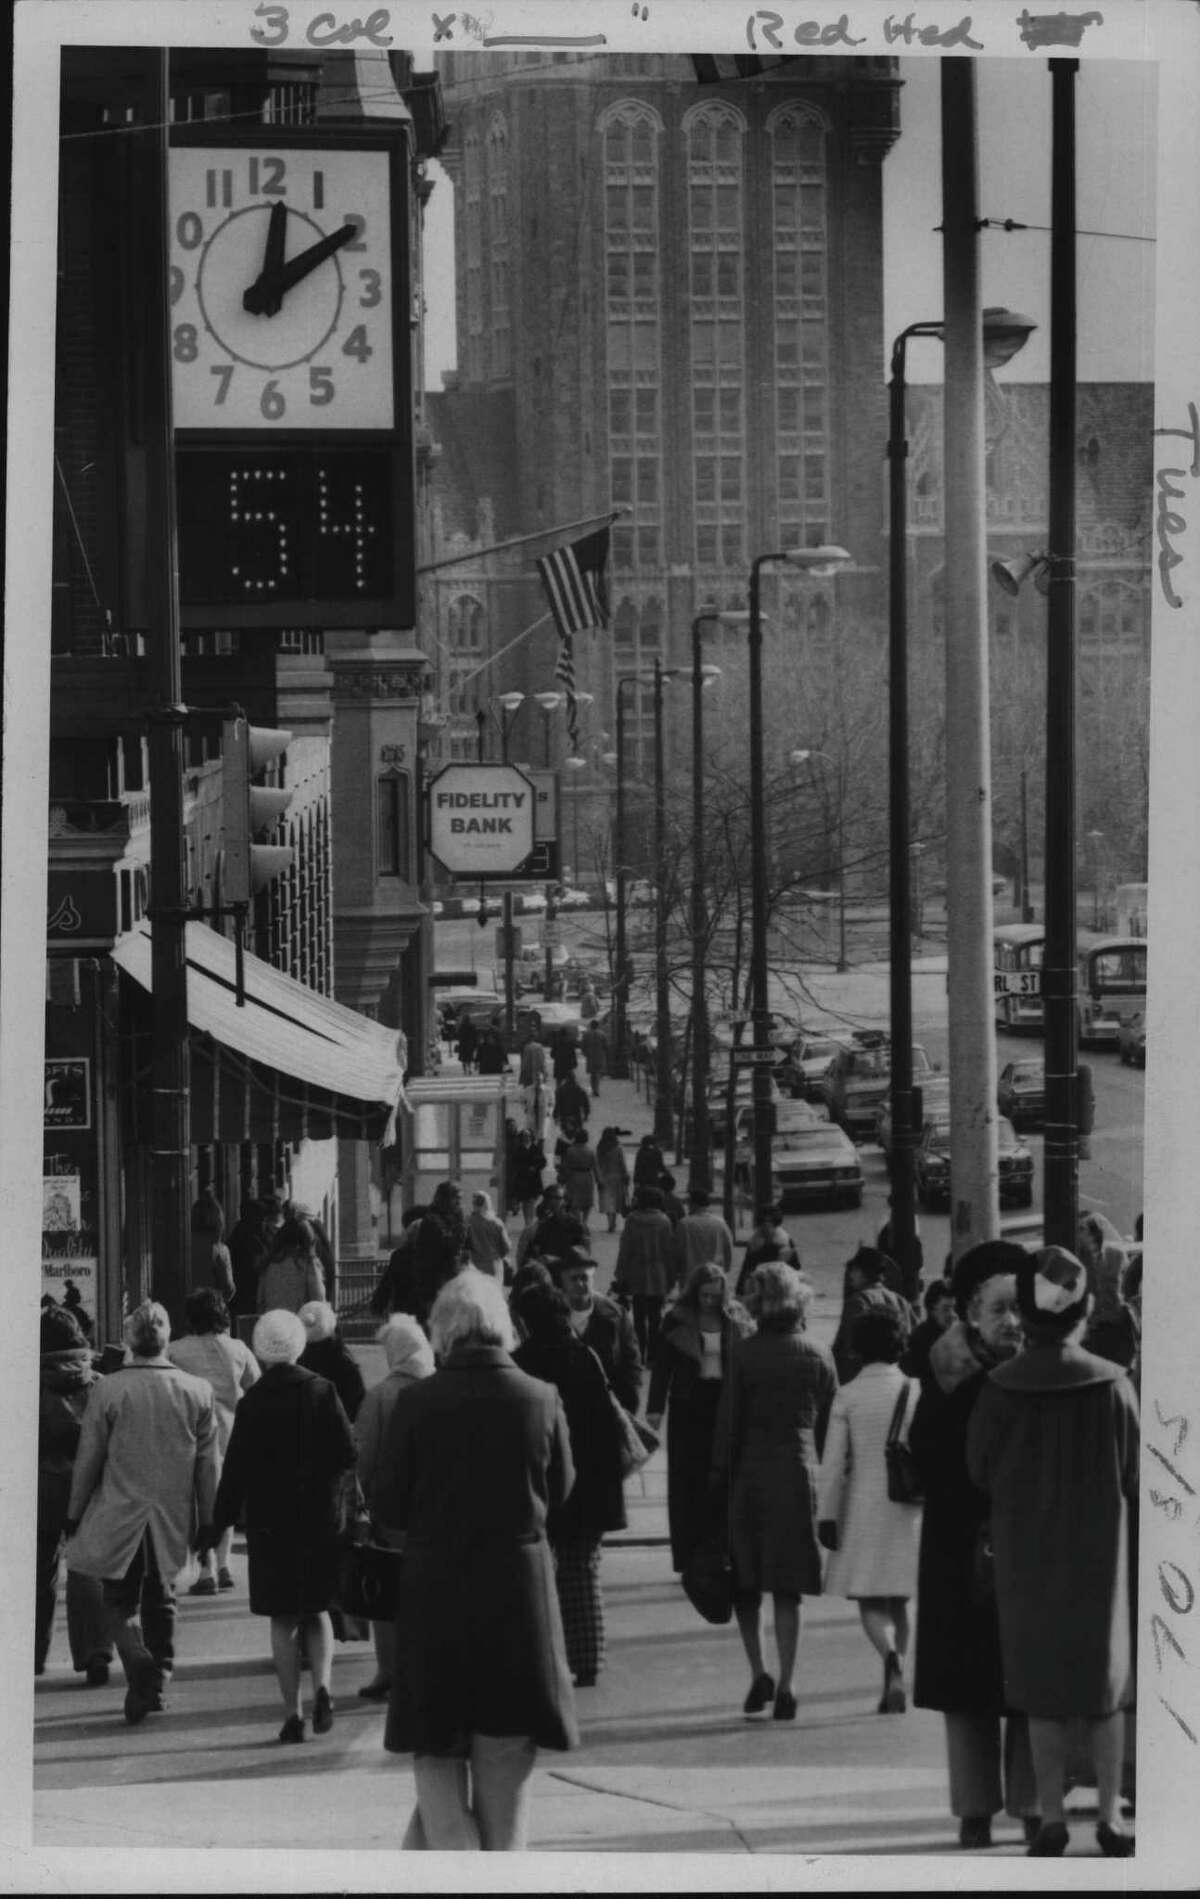 Albany, New York - Looking east on State Street towards North Pearl Street - 12:10pm - 54 degrees. December 4, 1973 (Bob Richey/Times Union Archive)